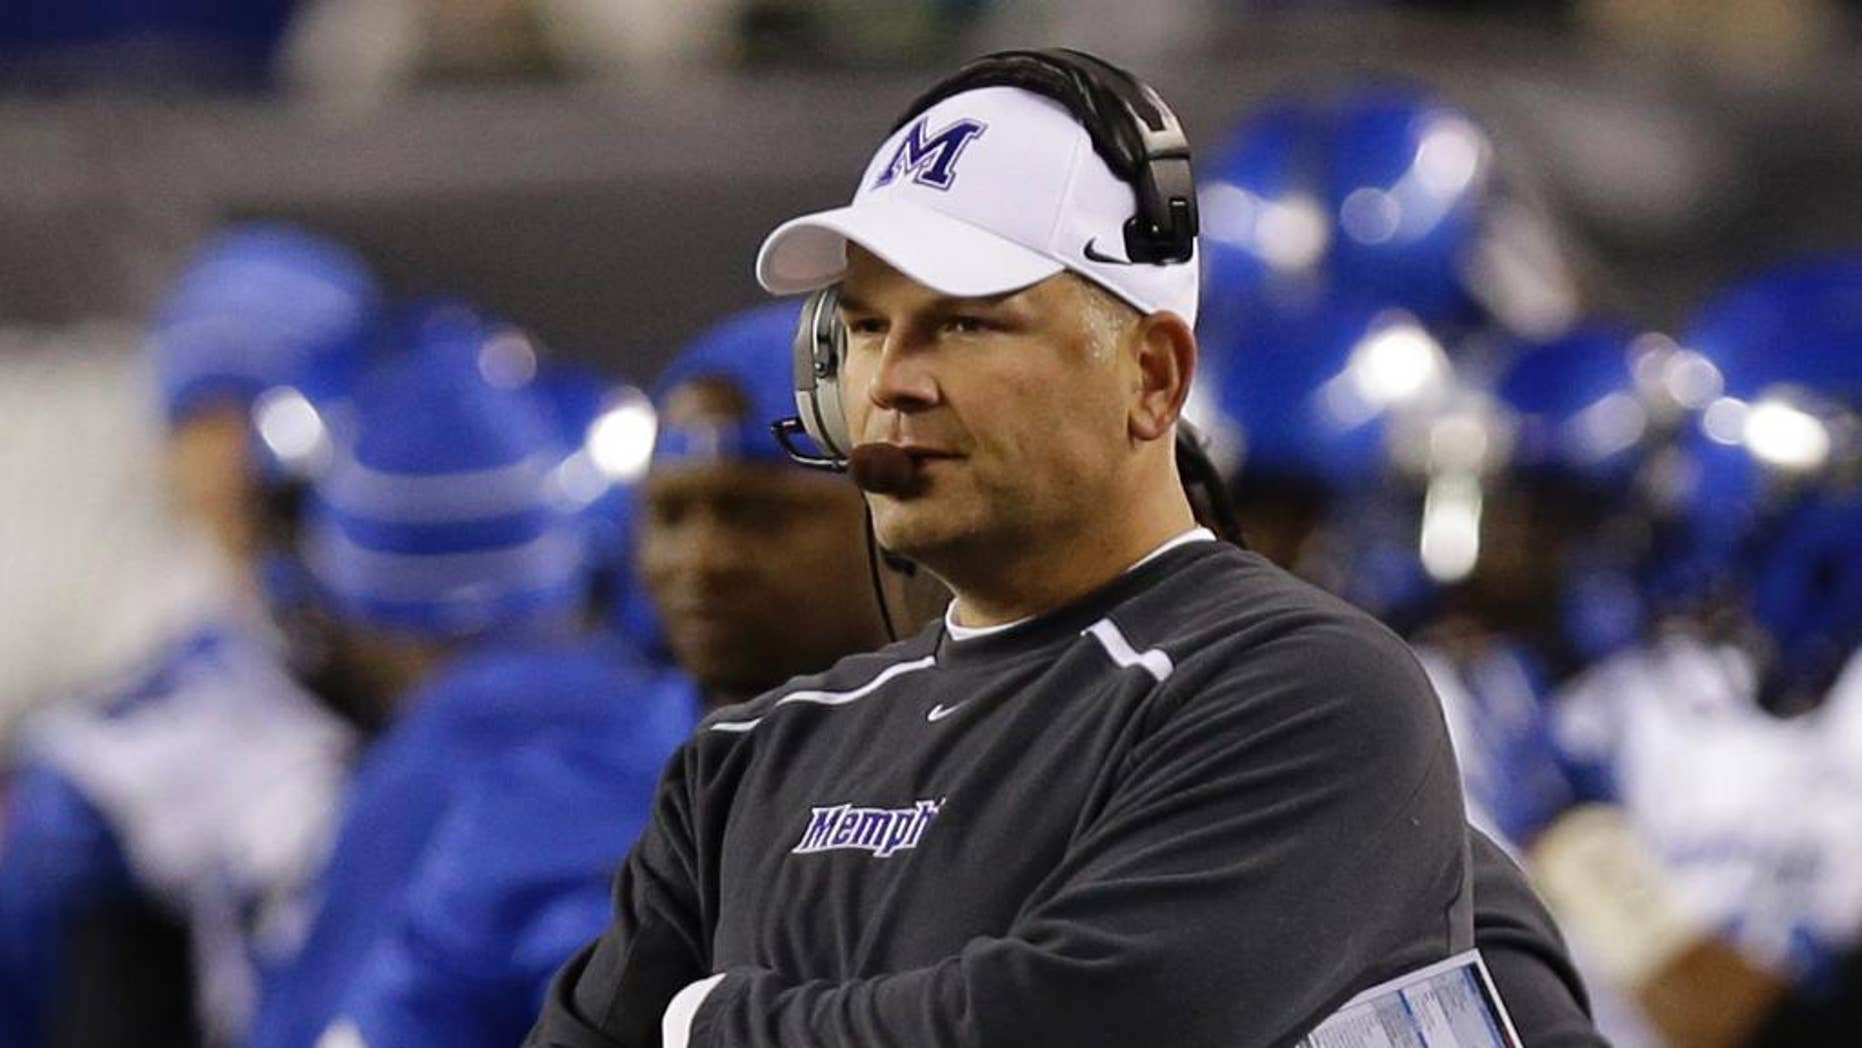 FILE -- In this Oct. 4, 2014, file photo, Memphis coach Justin Fuente watches from the sideline in the first half of an NCAA college football game against Cincinnati in Cincinnati. Fuente said he saw plenty of potential in Memphis when he was hired to take over the program in December 2011. Now, his faith is being rewarded as Memphis could clinch at least a share of the American Athletic Conference title with a victory Saturday against Connecticut. (AP Photo/Al Behrman, File)